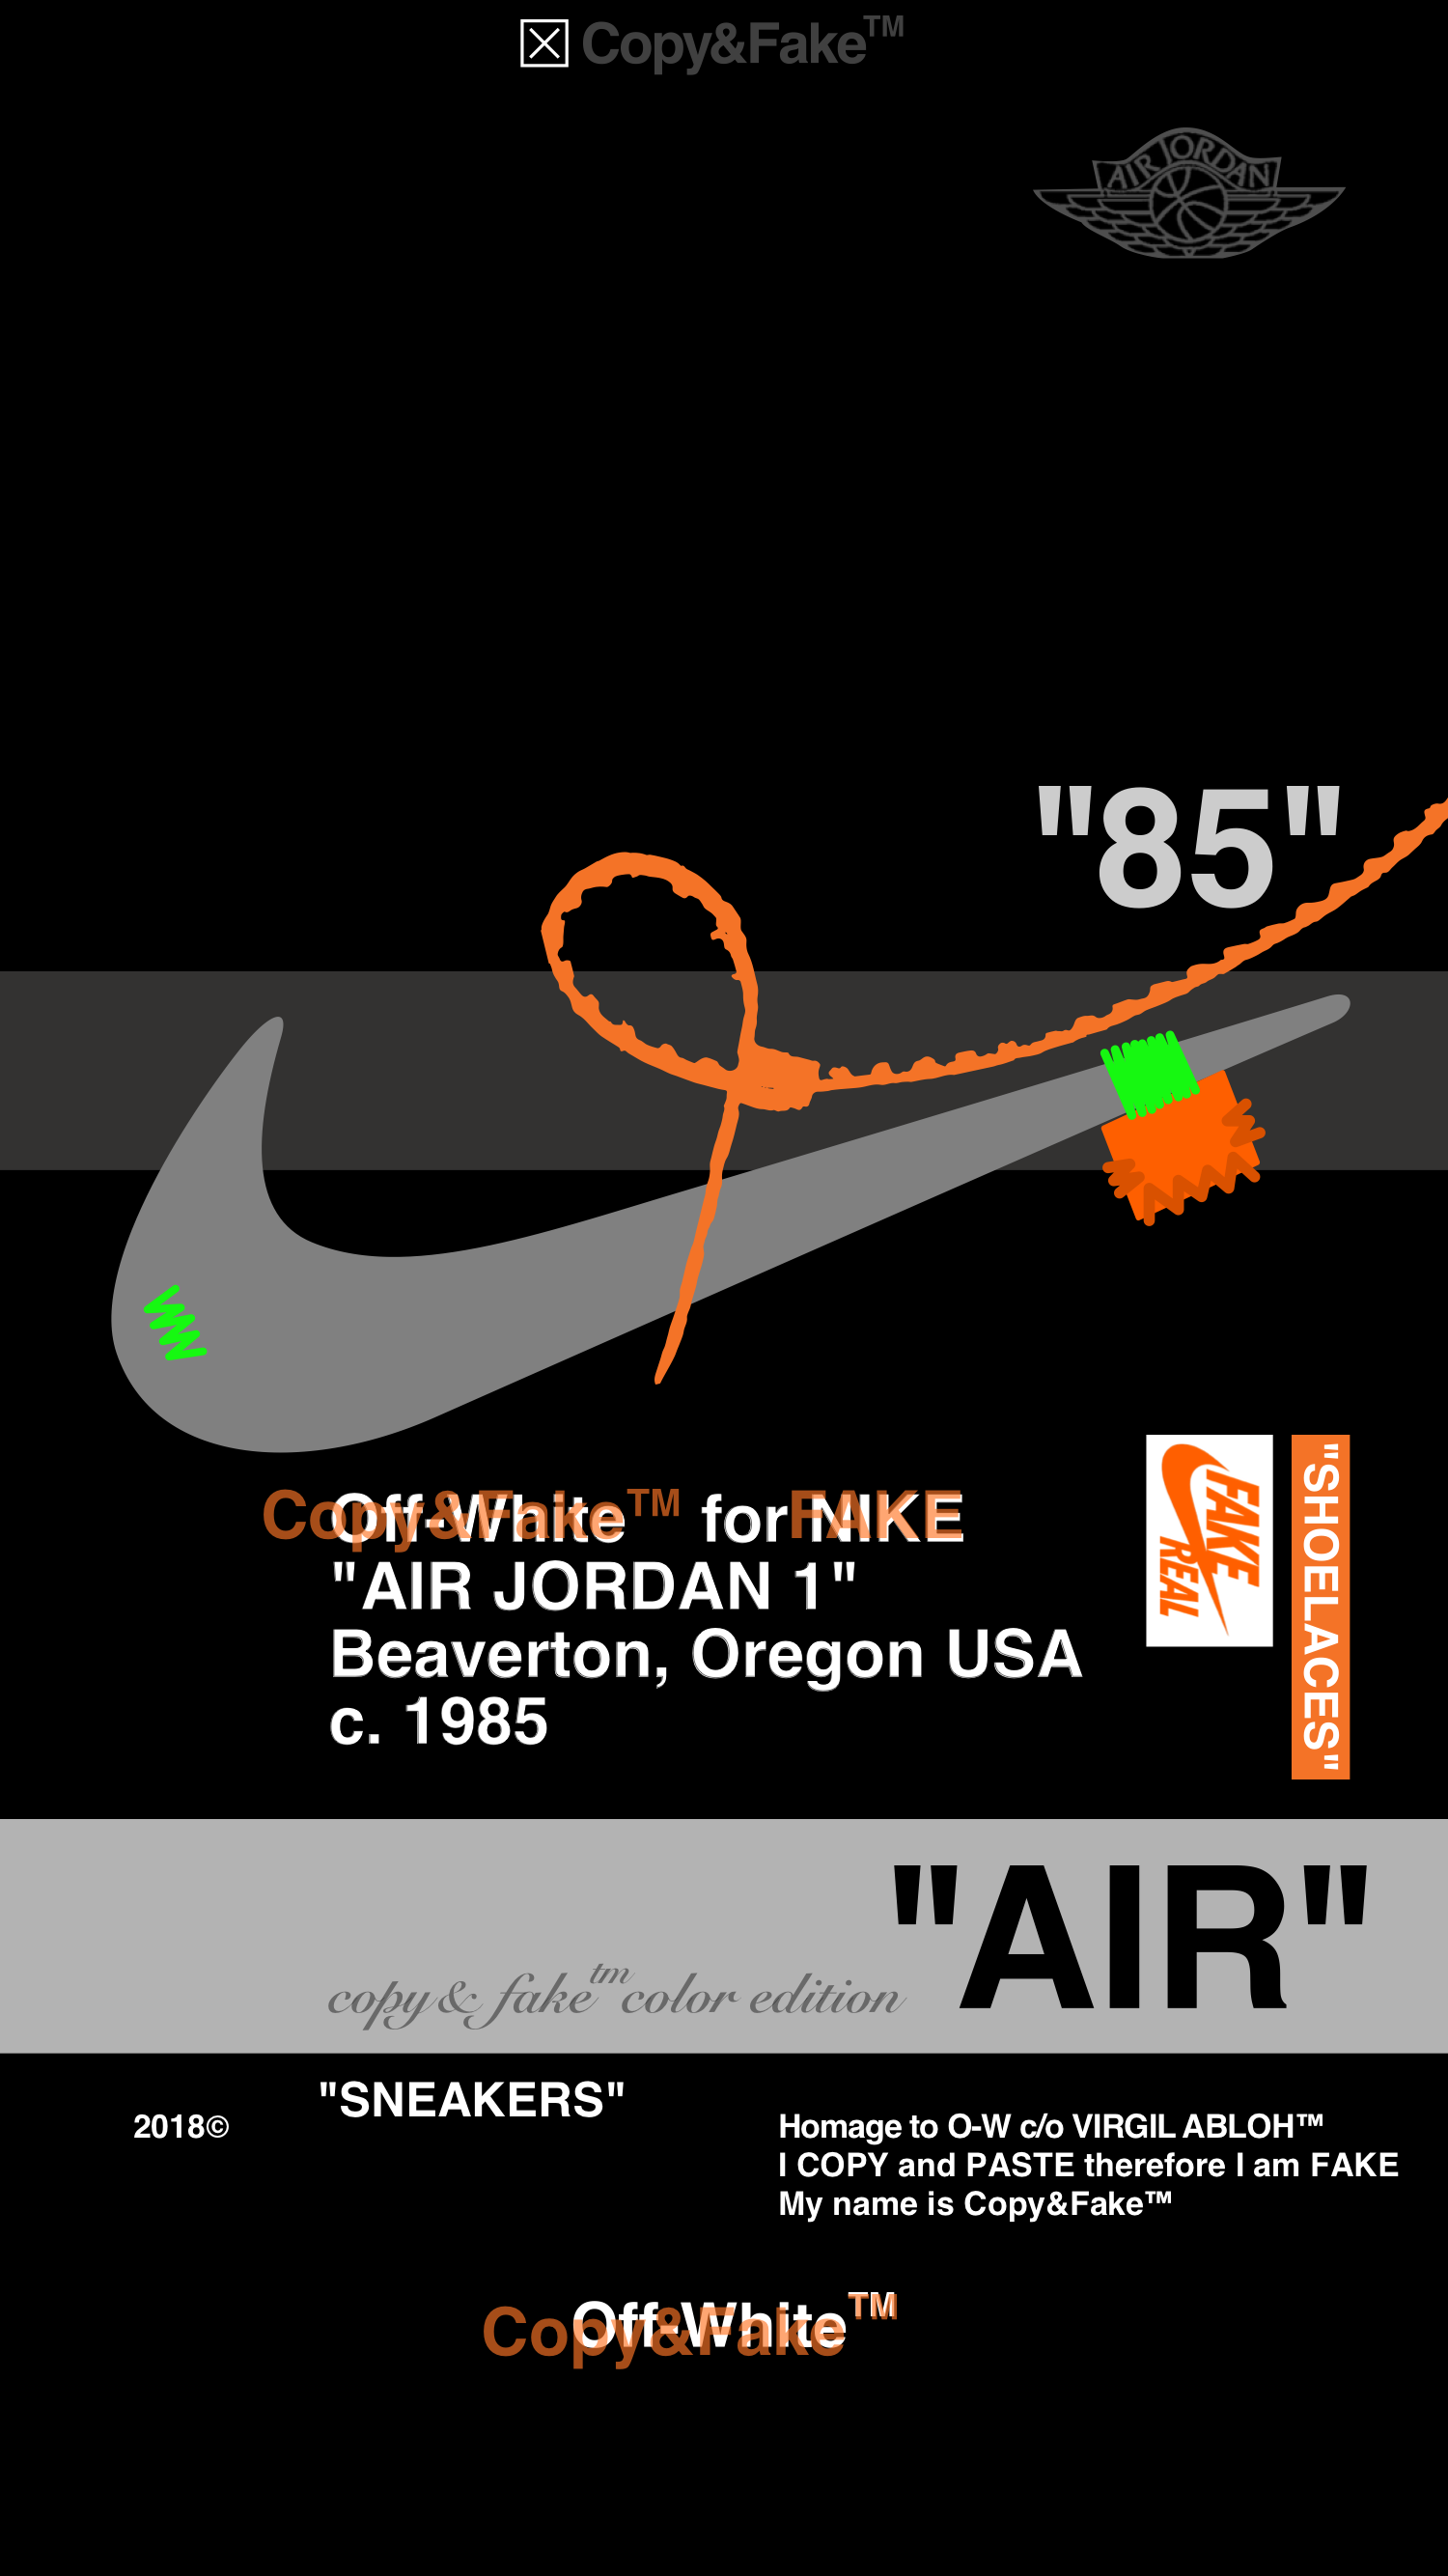 Off White Nike Aj1 Blk02 Copy Fake Color Edition White Wallpaper For Iphone Hype Wallpaper Hypebeast Iphone Wallpaper